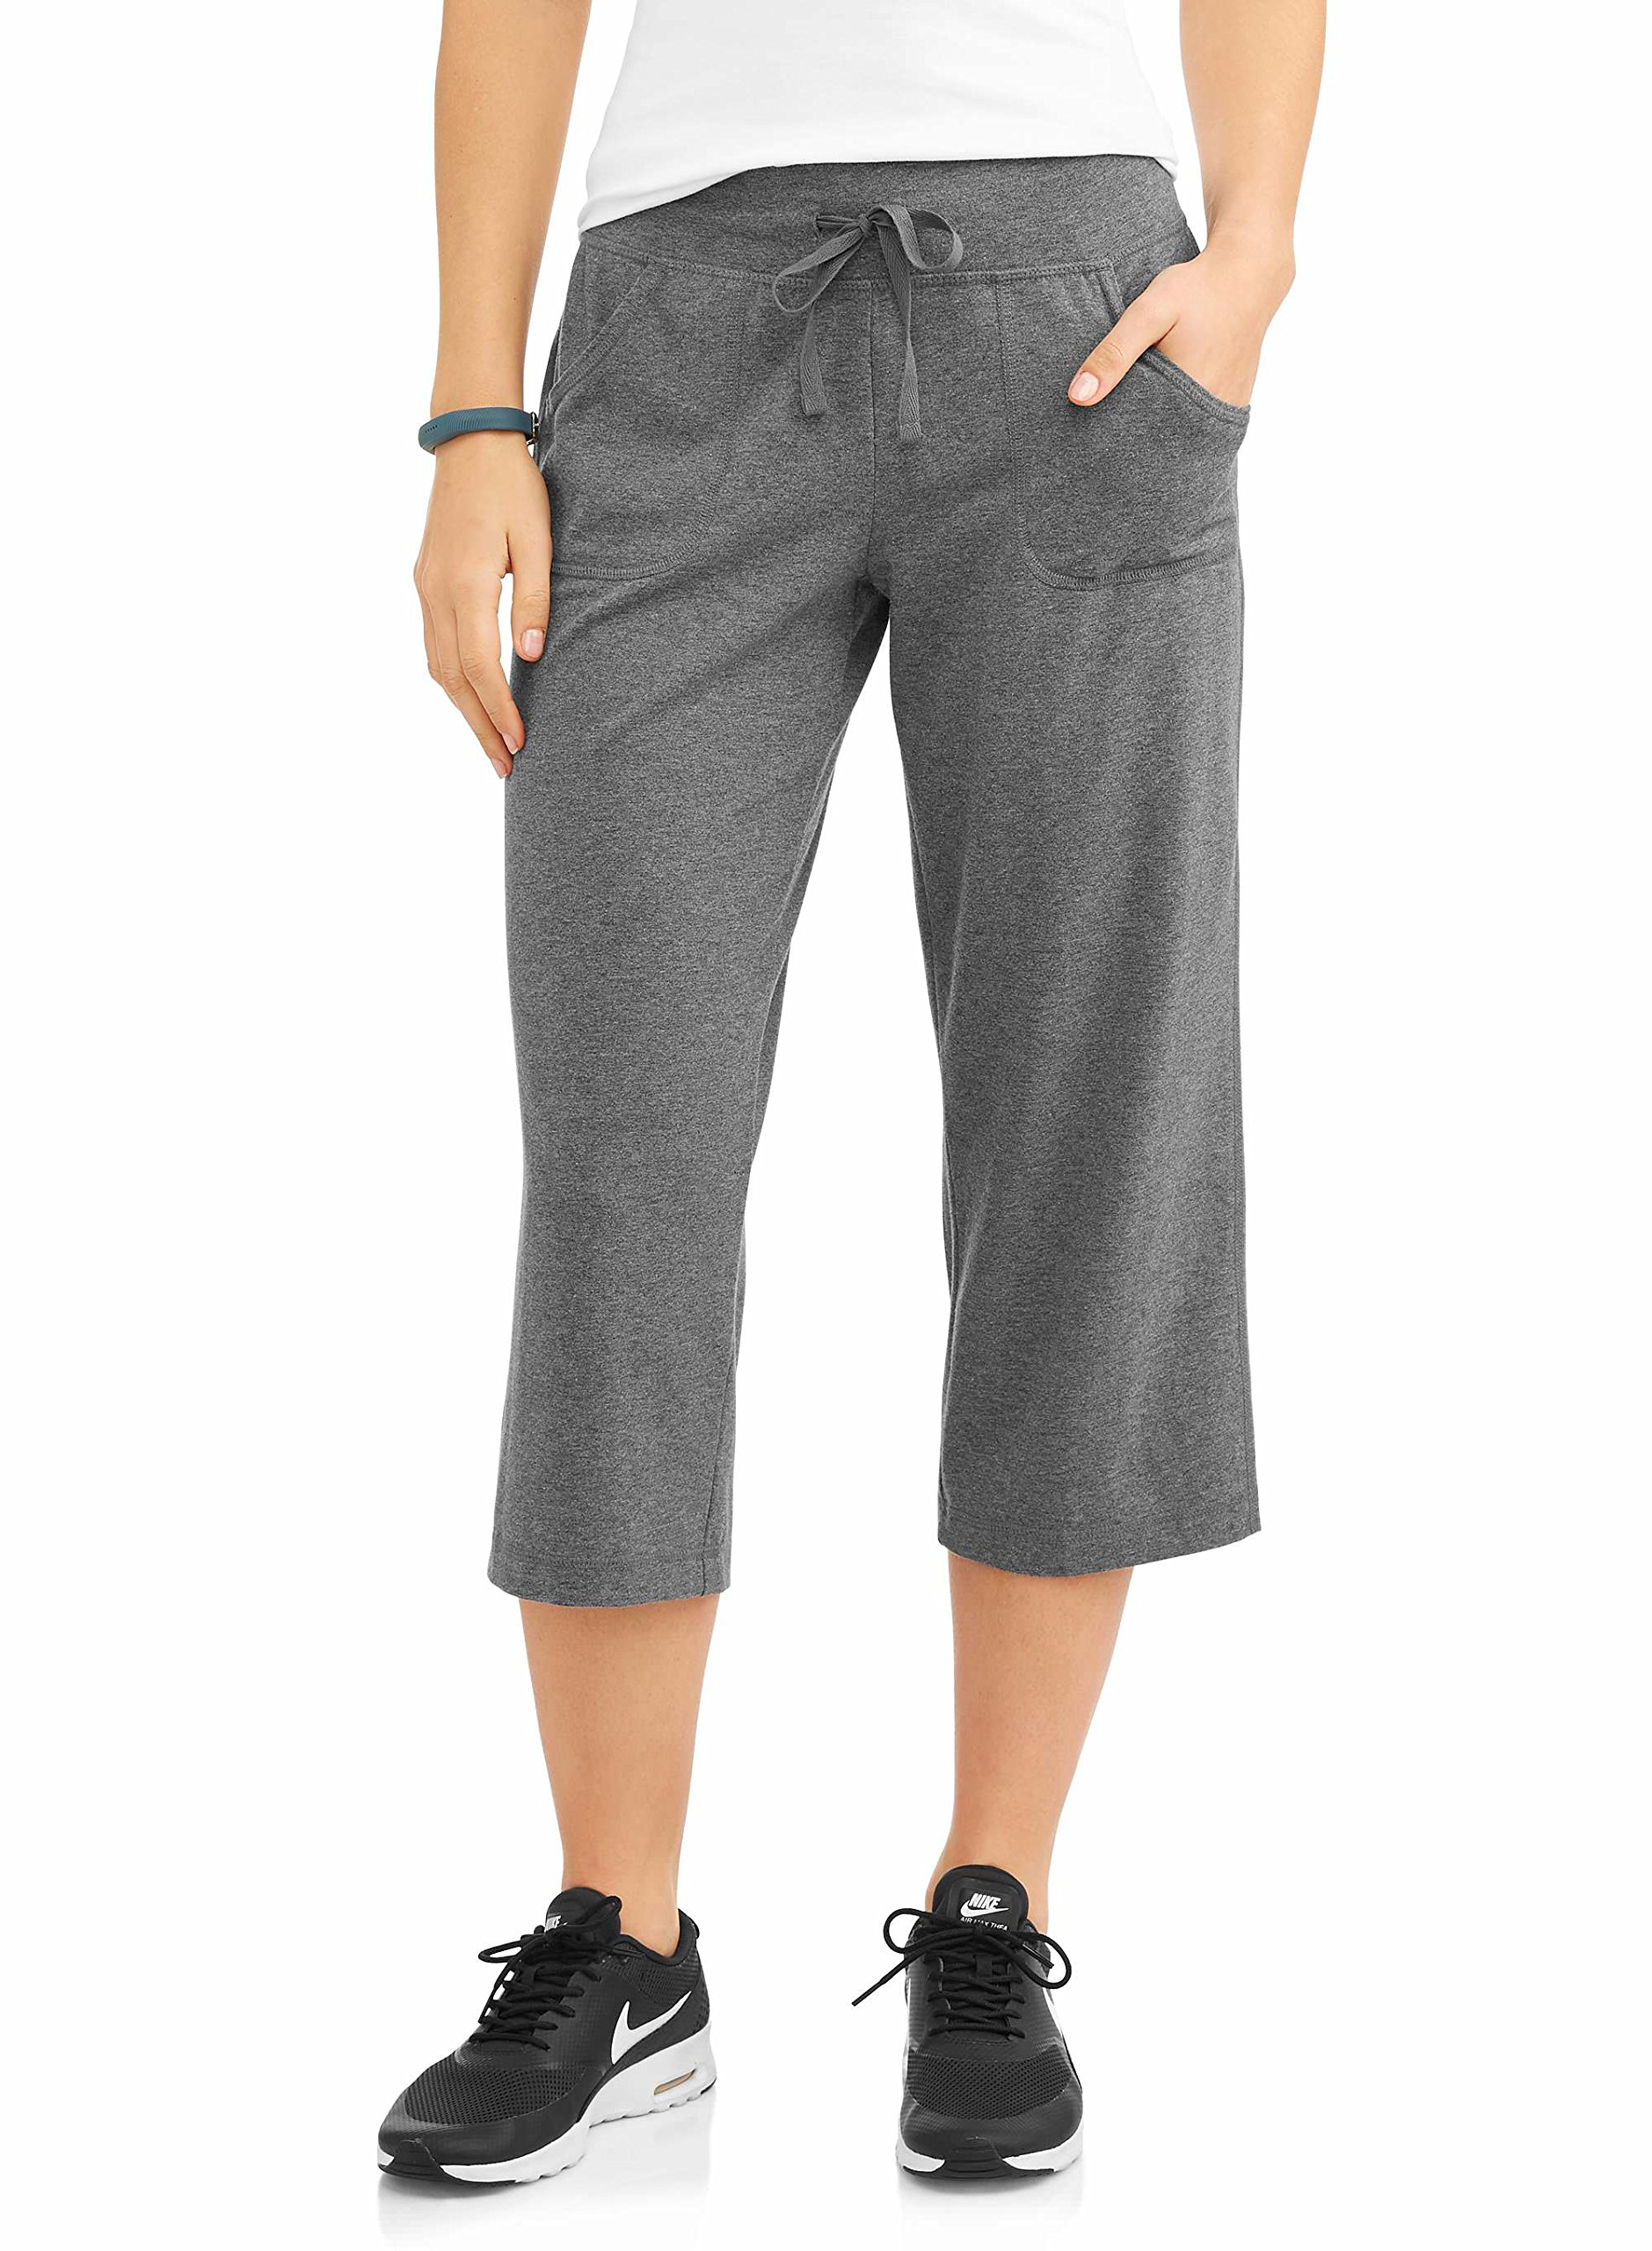 Athletic Works Women's Active Core Knit Capri Drawstring Pant w/Pockets (XXL, Charcoal)